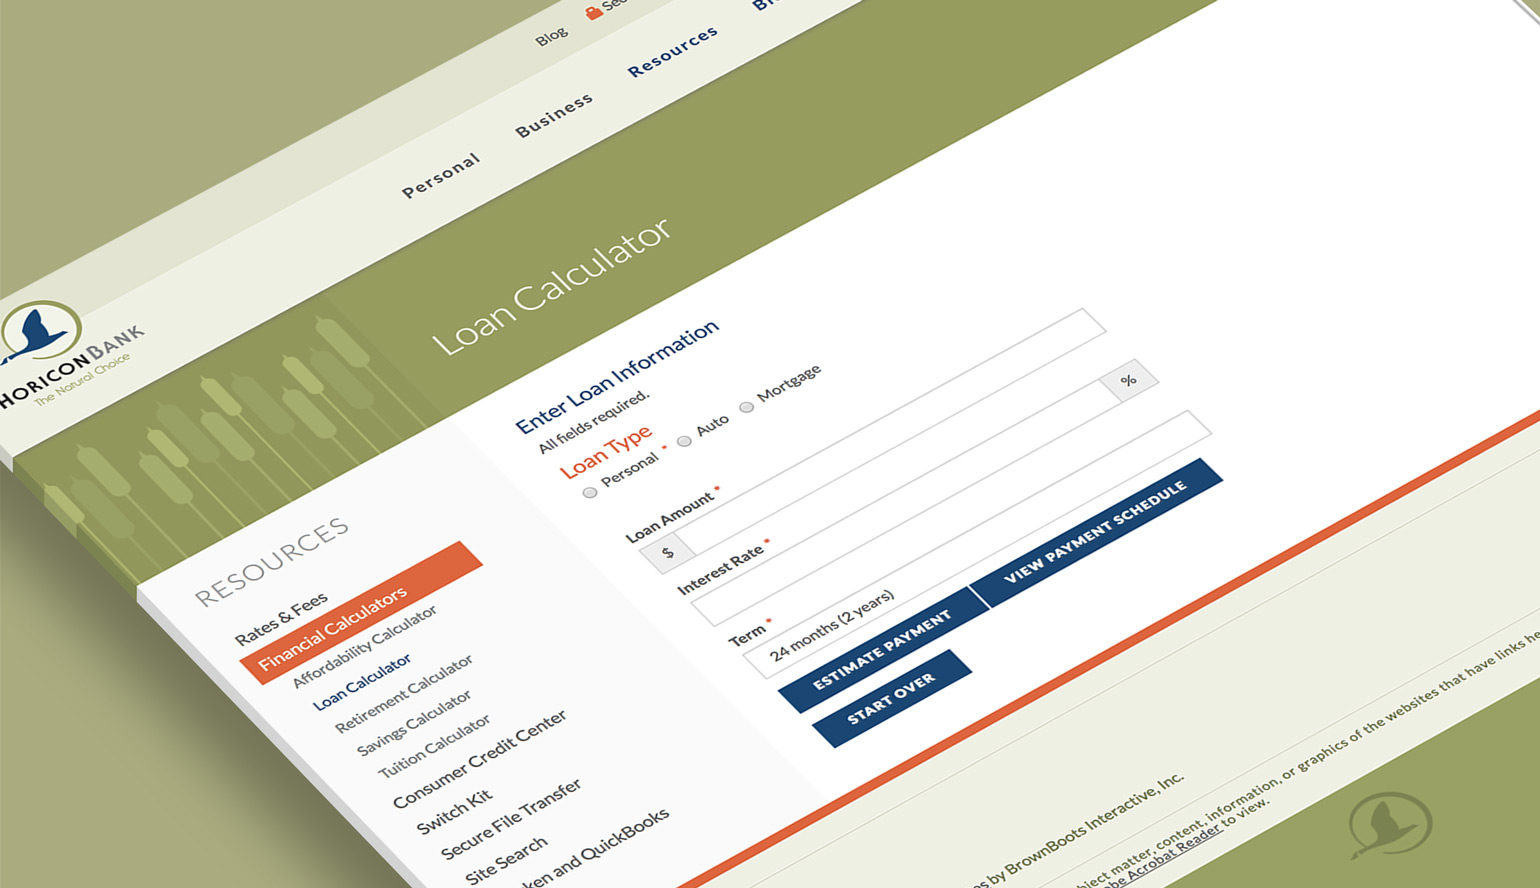 Horicon Bank's financial calculators displayed on the bank website